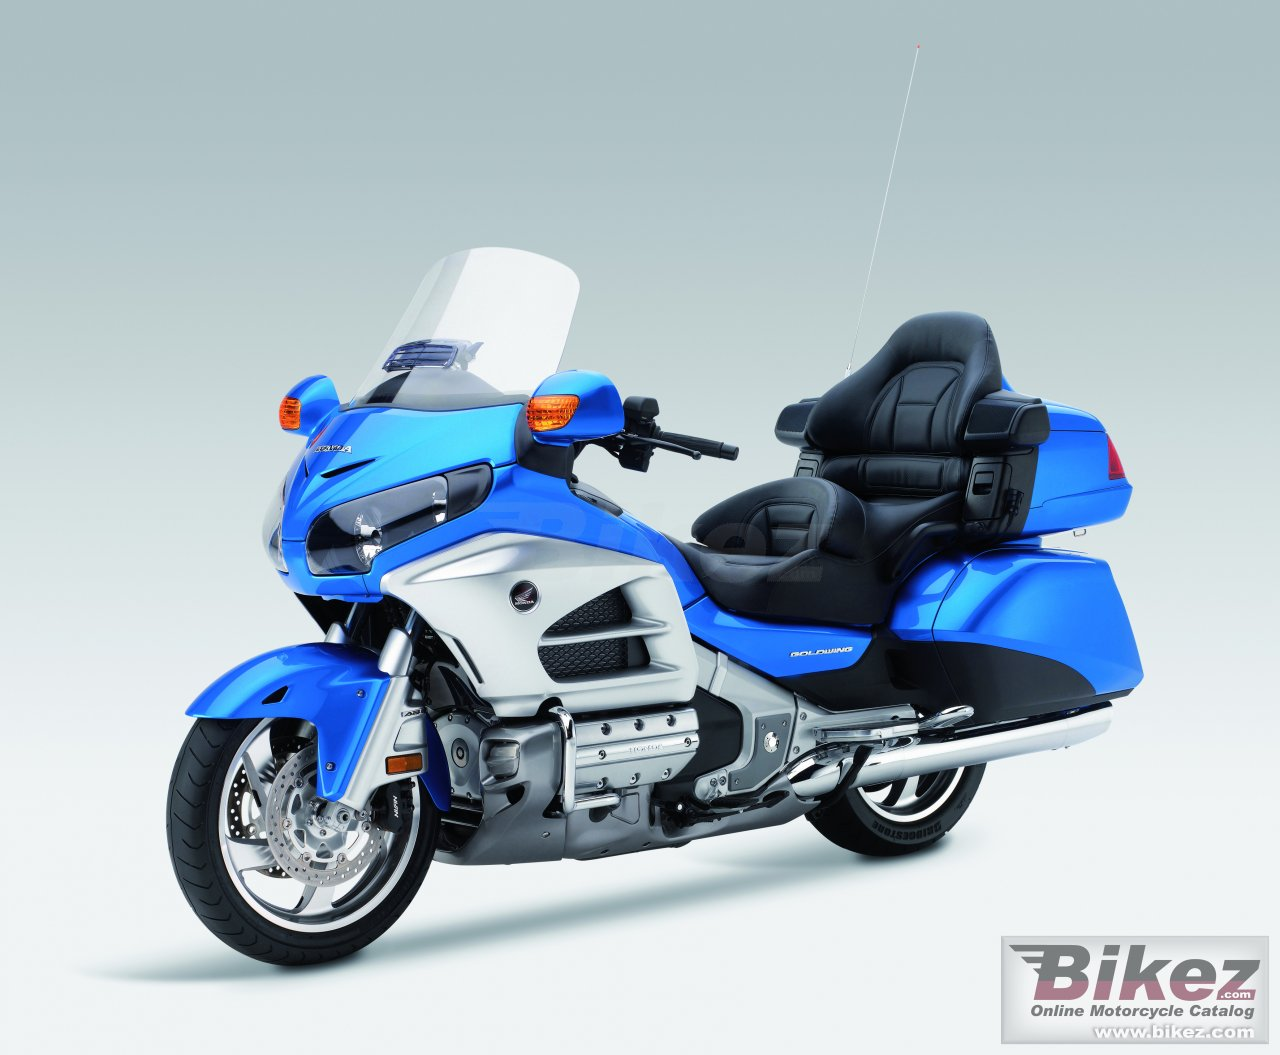 Big Honda gold wing air bag picture and wallpaper from Bikez.com